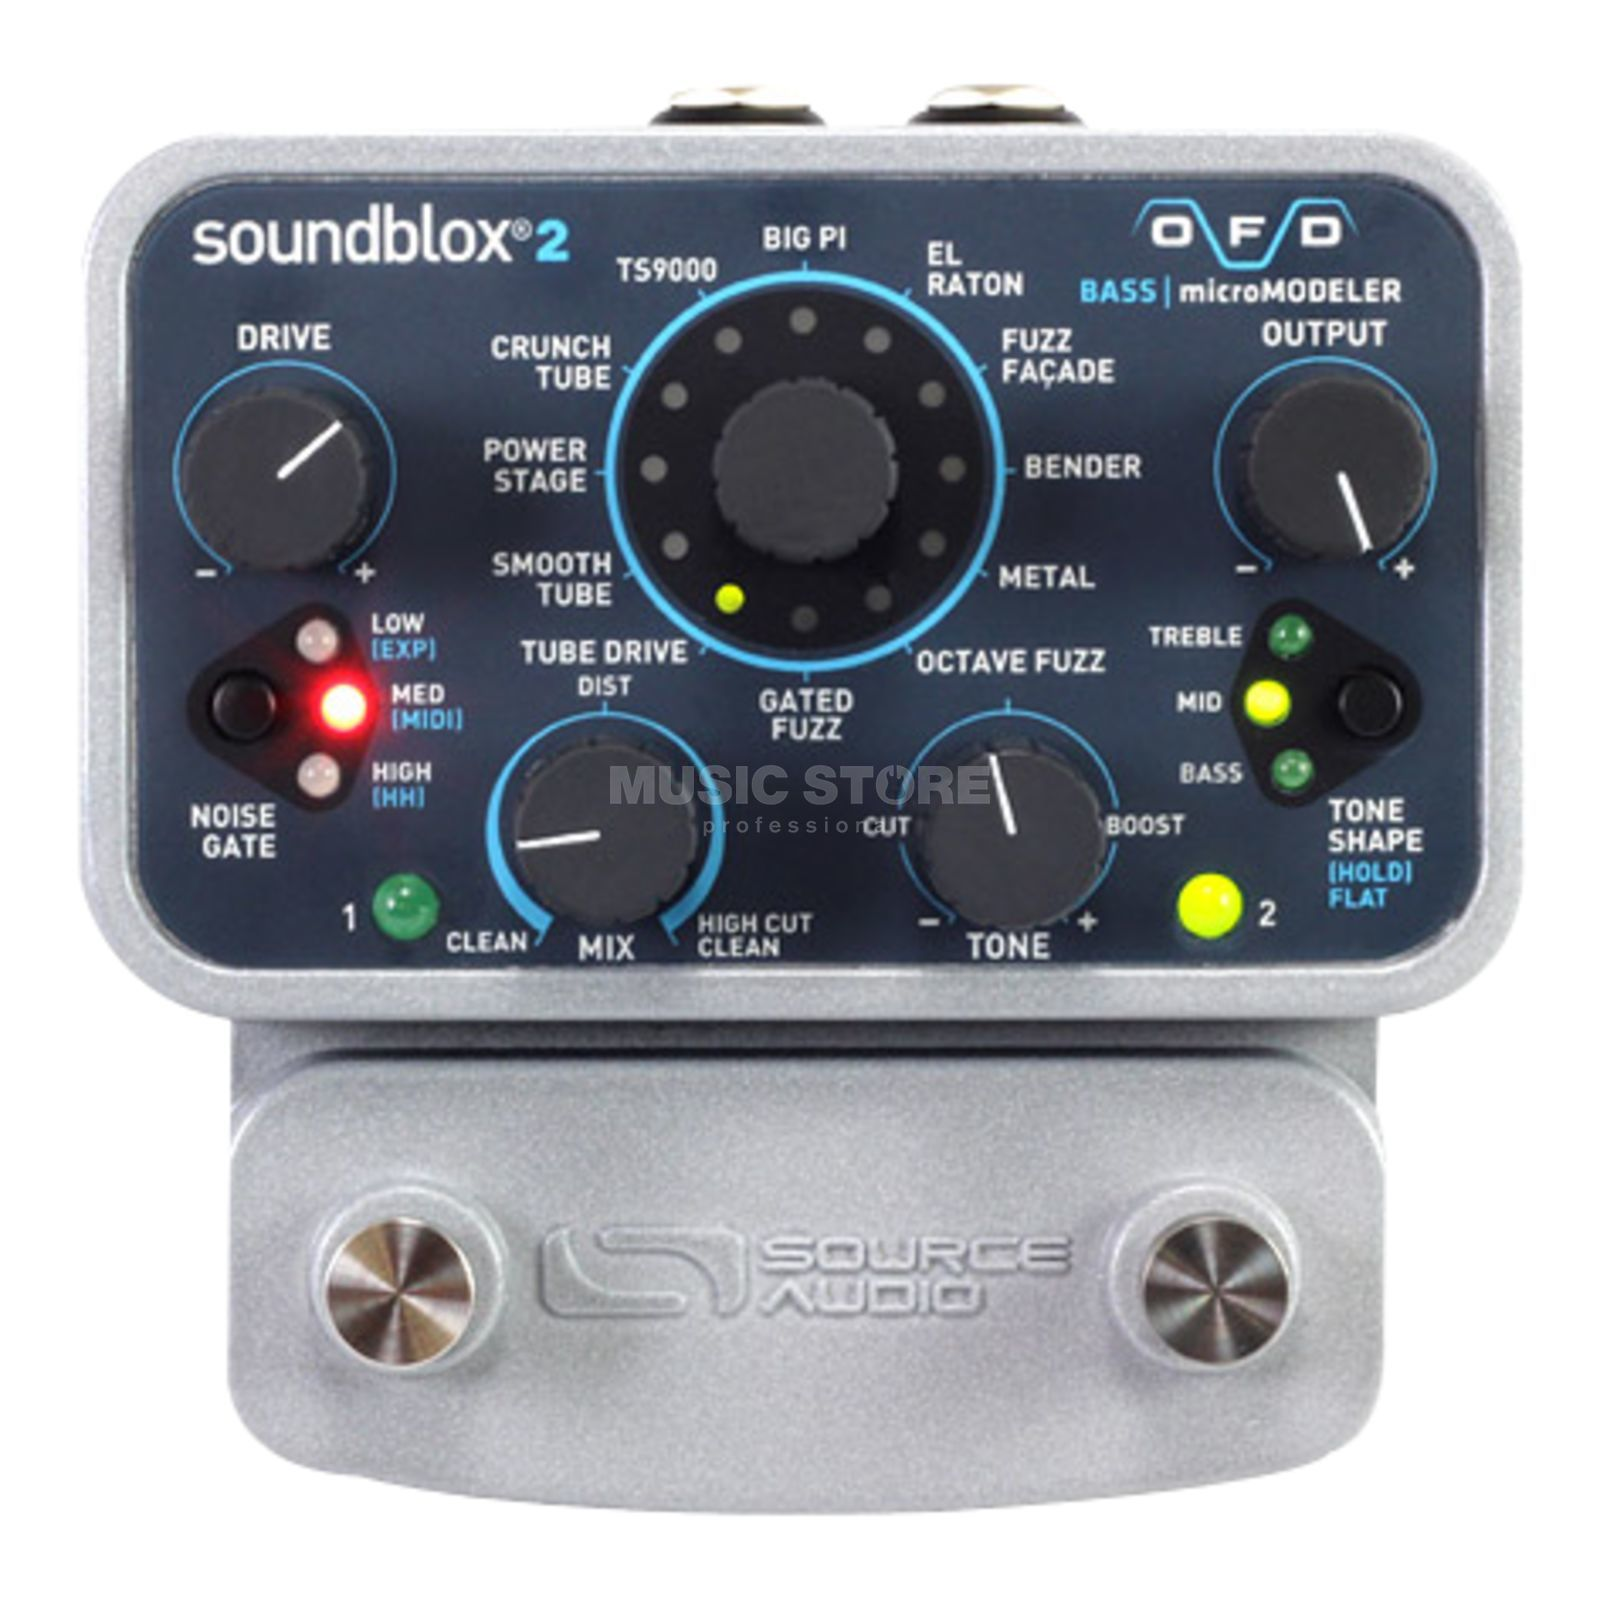 Source Audio Soundblox 2 OFD microModeler  Immagine prodotto